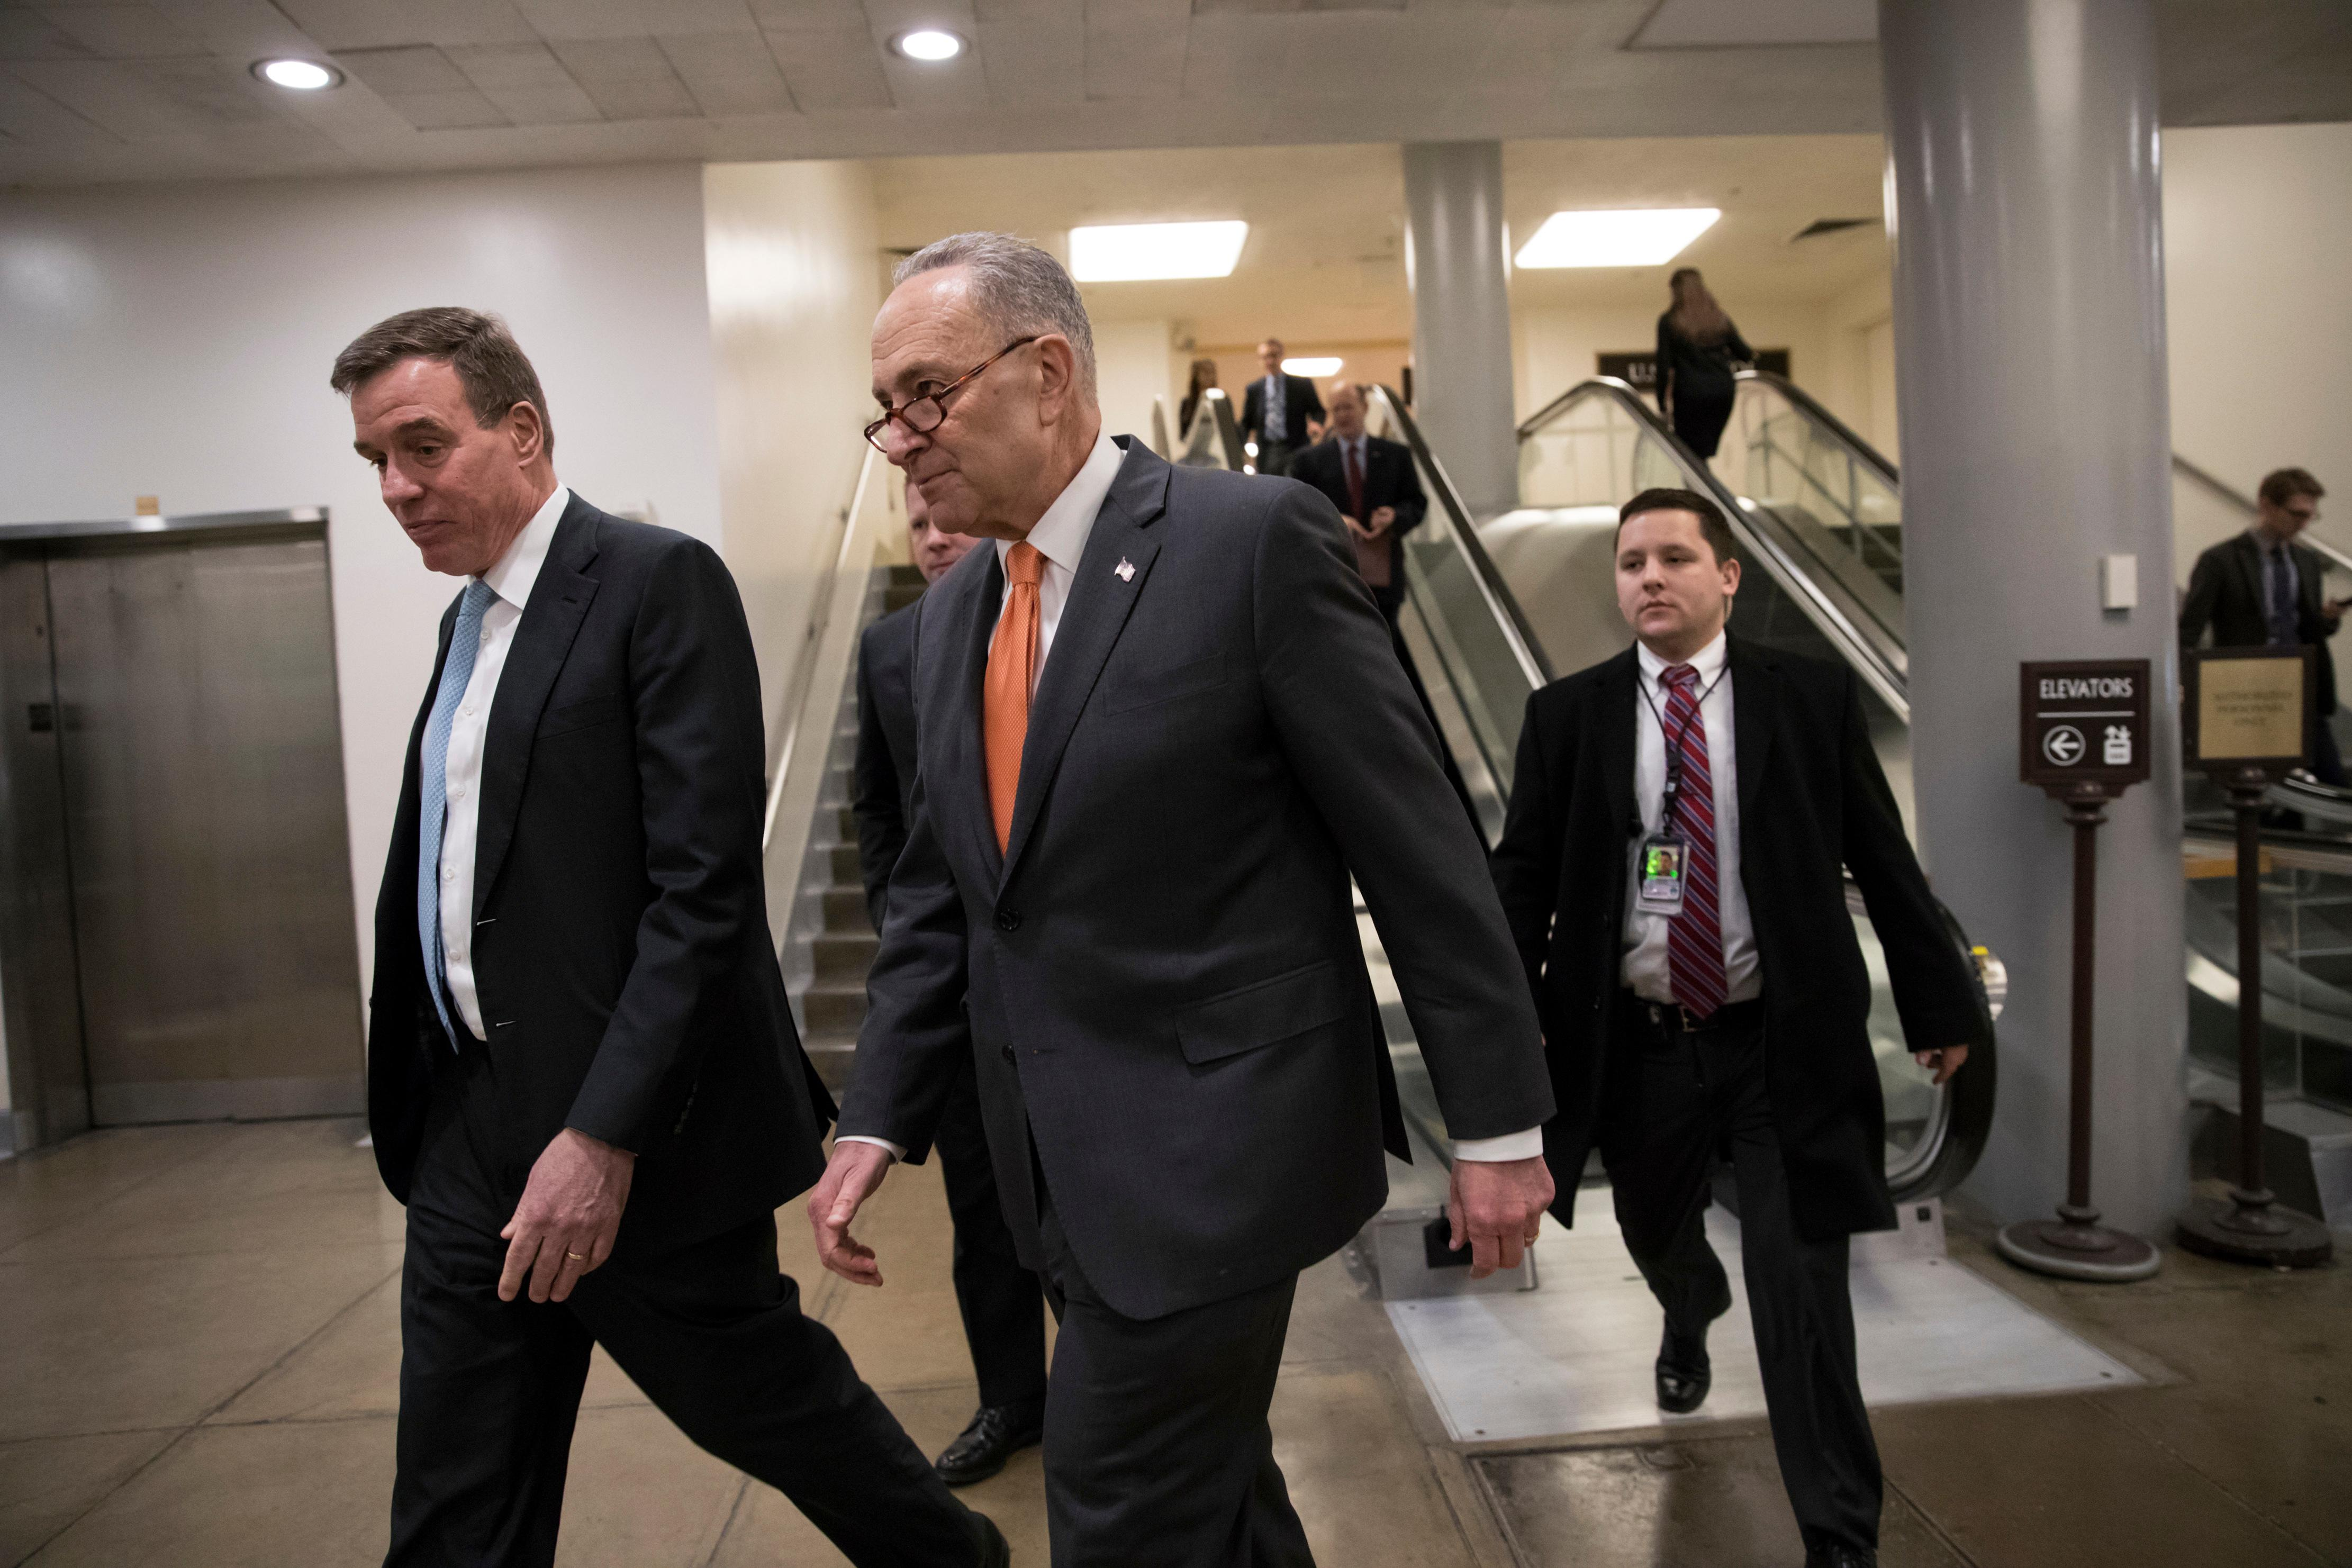 Senate Minority Leader Chuck Schumer, D-N.Y., center, and Sen. Mark Warner, D-Va., left, the vice chair of the Senate Select Committee on Intelligence, head to a closed security briefing at the Capitol in Washington, Tuesday, Feb. 6, 2018. (AP Photo/J. Scott Applewhite)